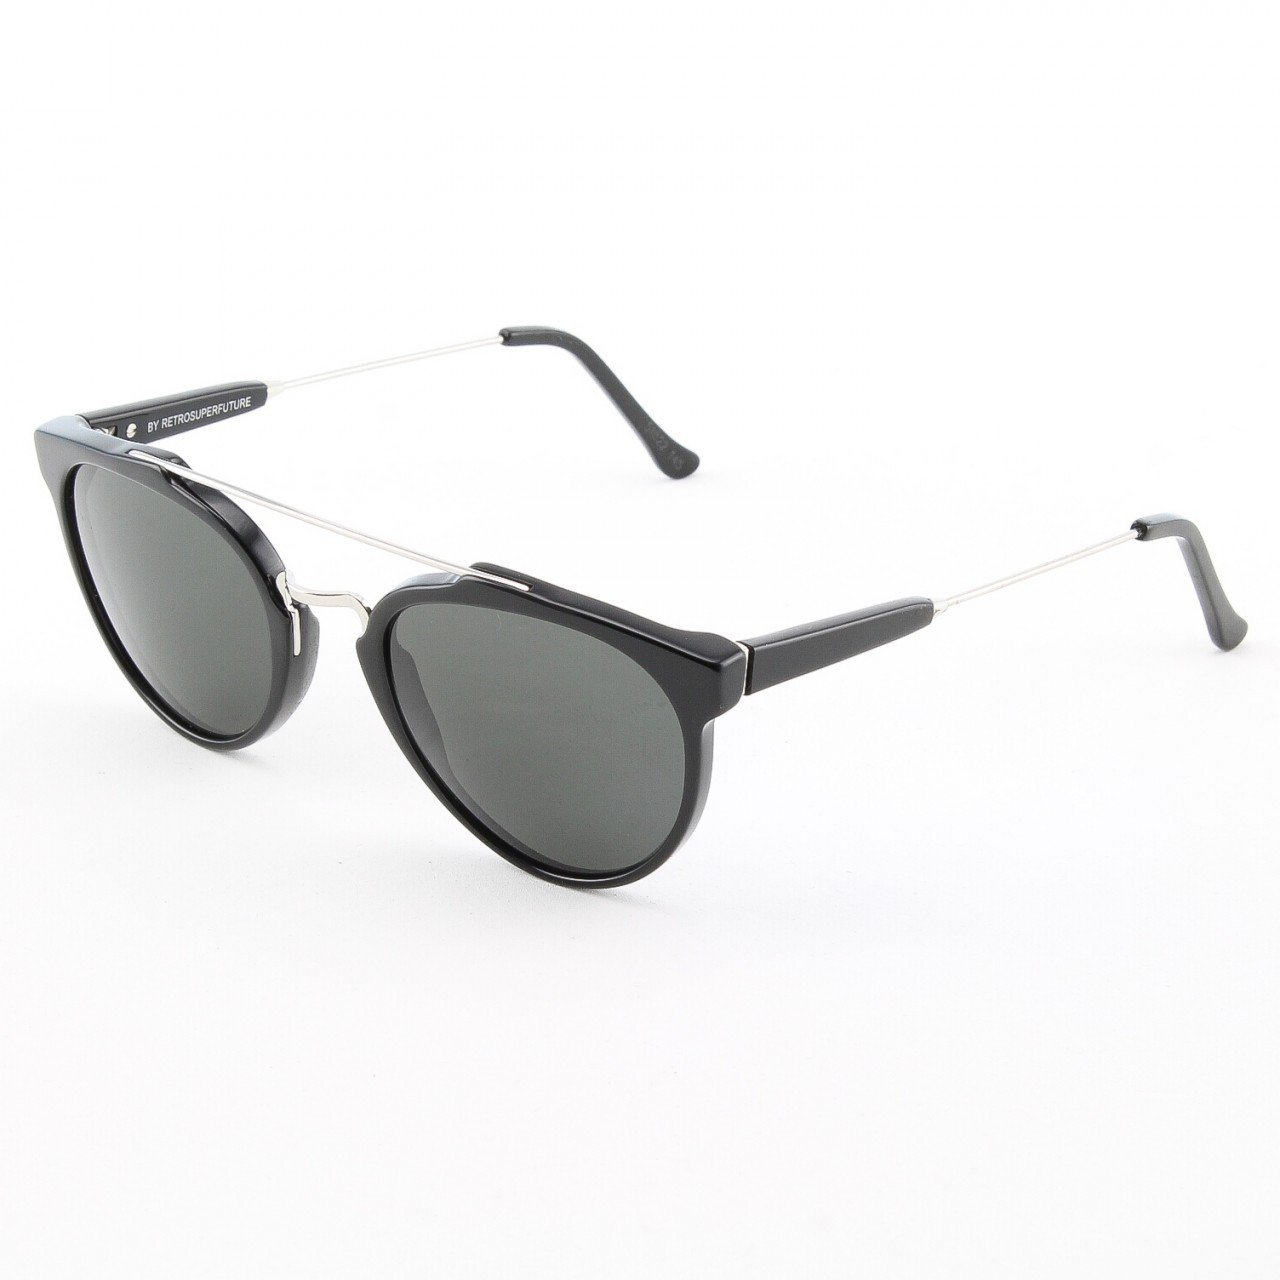 Super Giaguaro 468/3A Sunglasses by RETROSUPERFUTURE Color Black with Black Zeiss Lenses